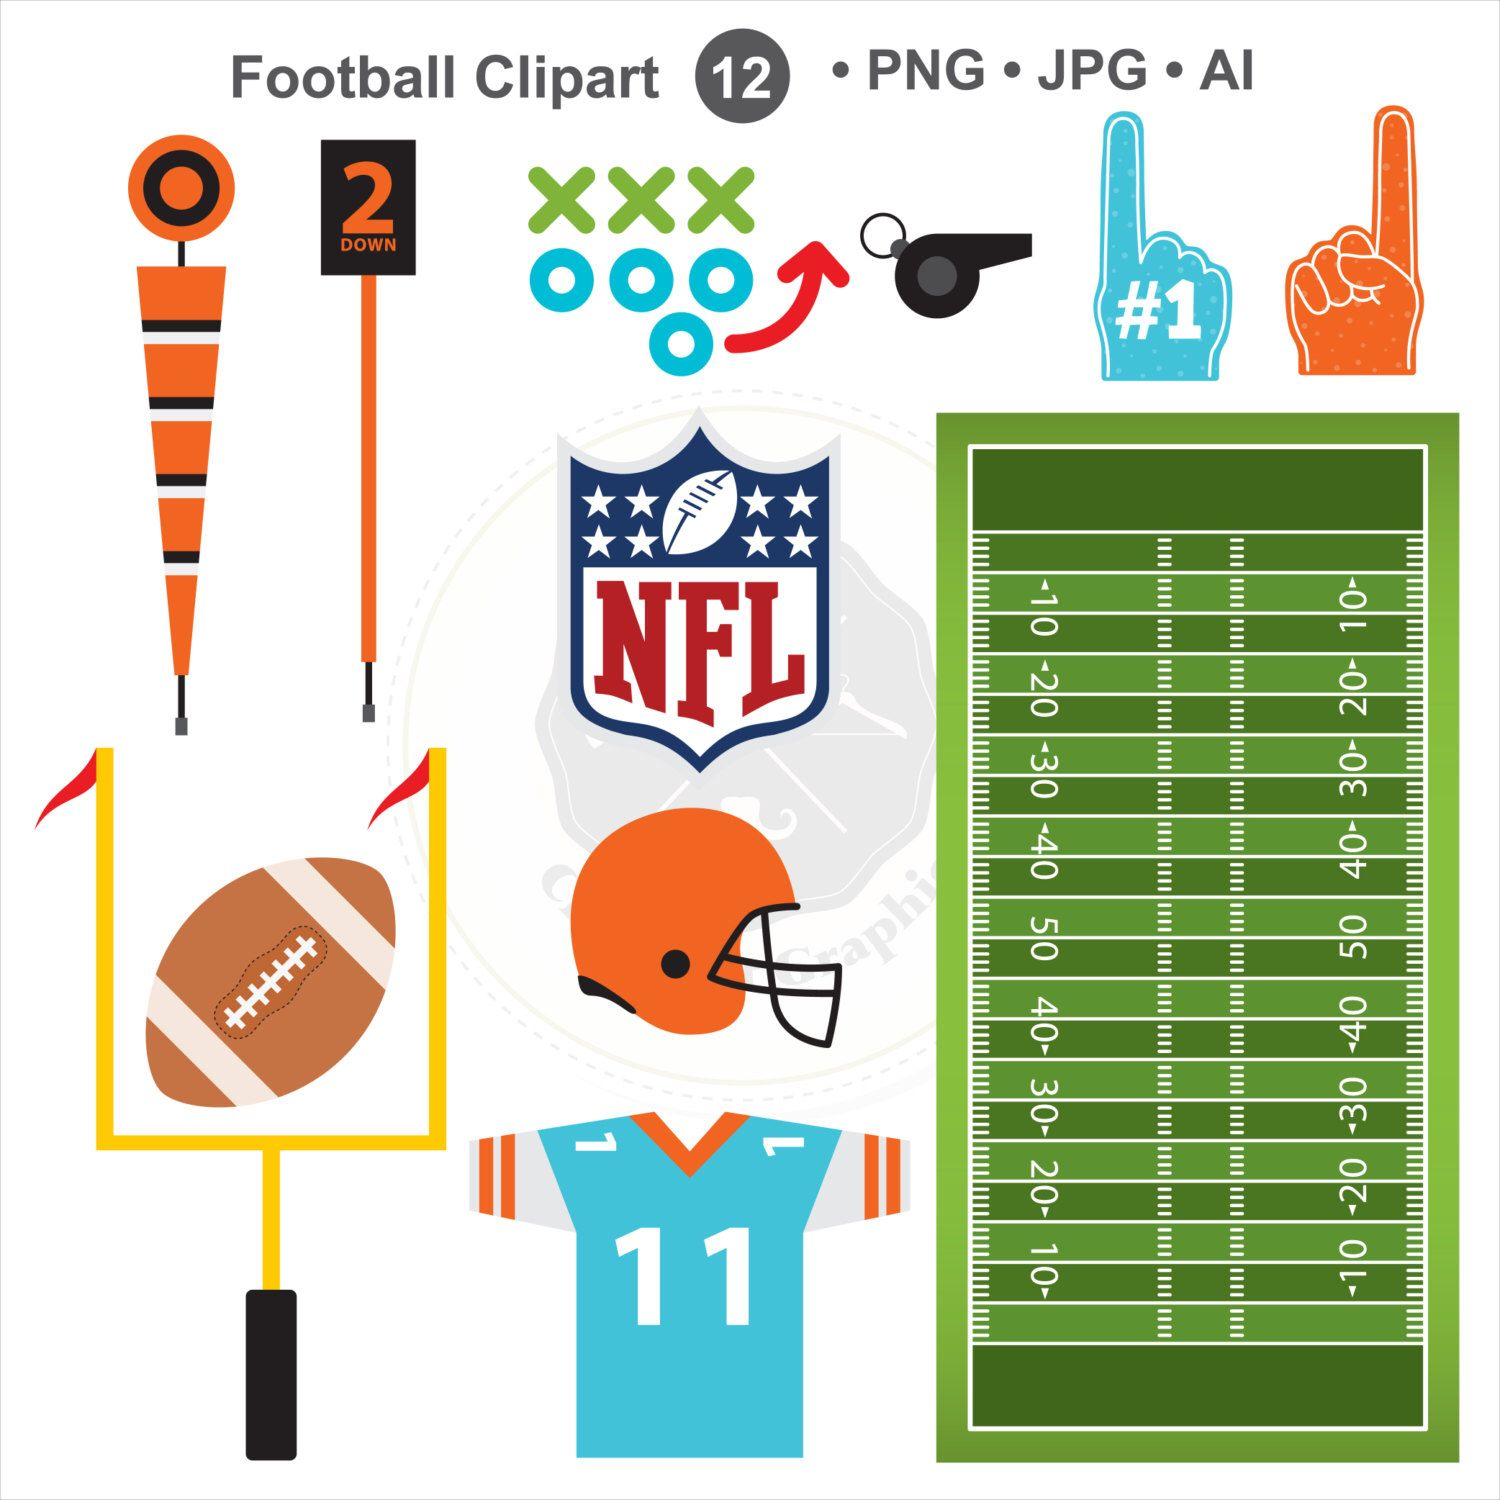 football clipart sports clipart american football clipart digital rh pinterest com american football clipart american football clipart free